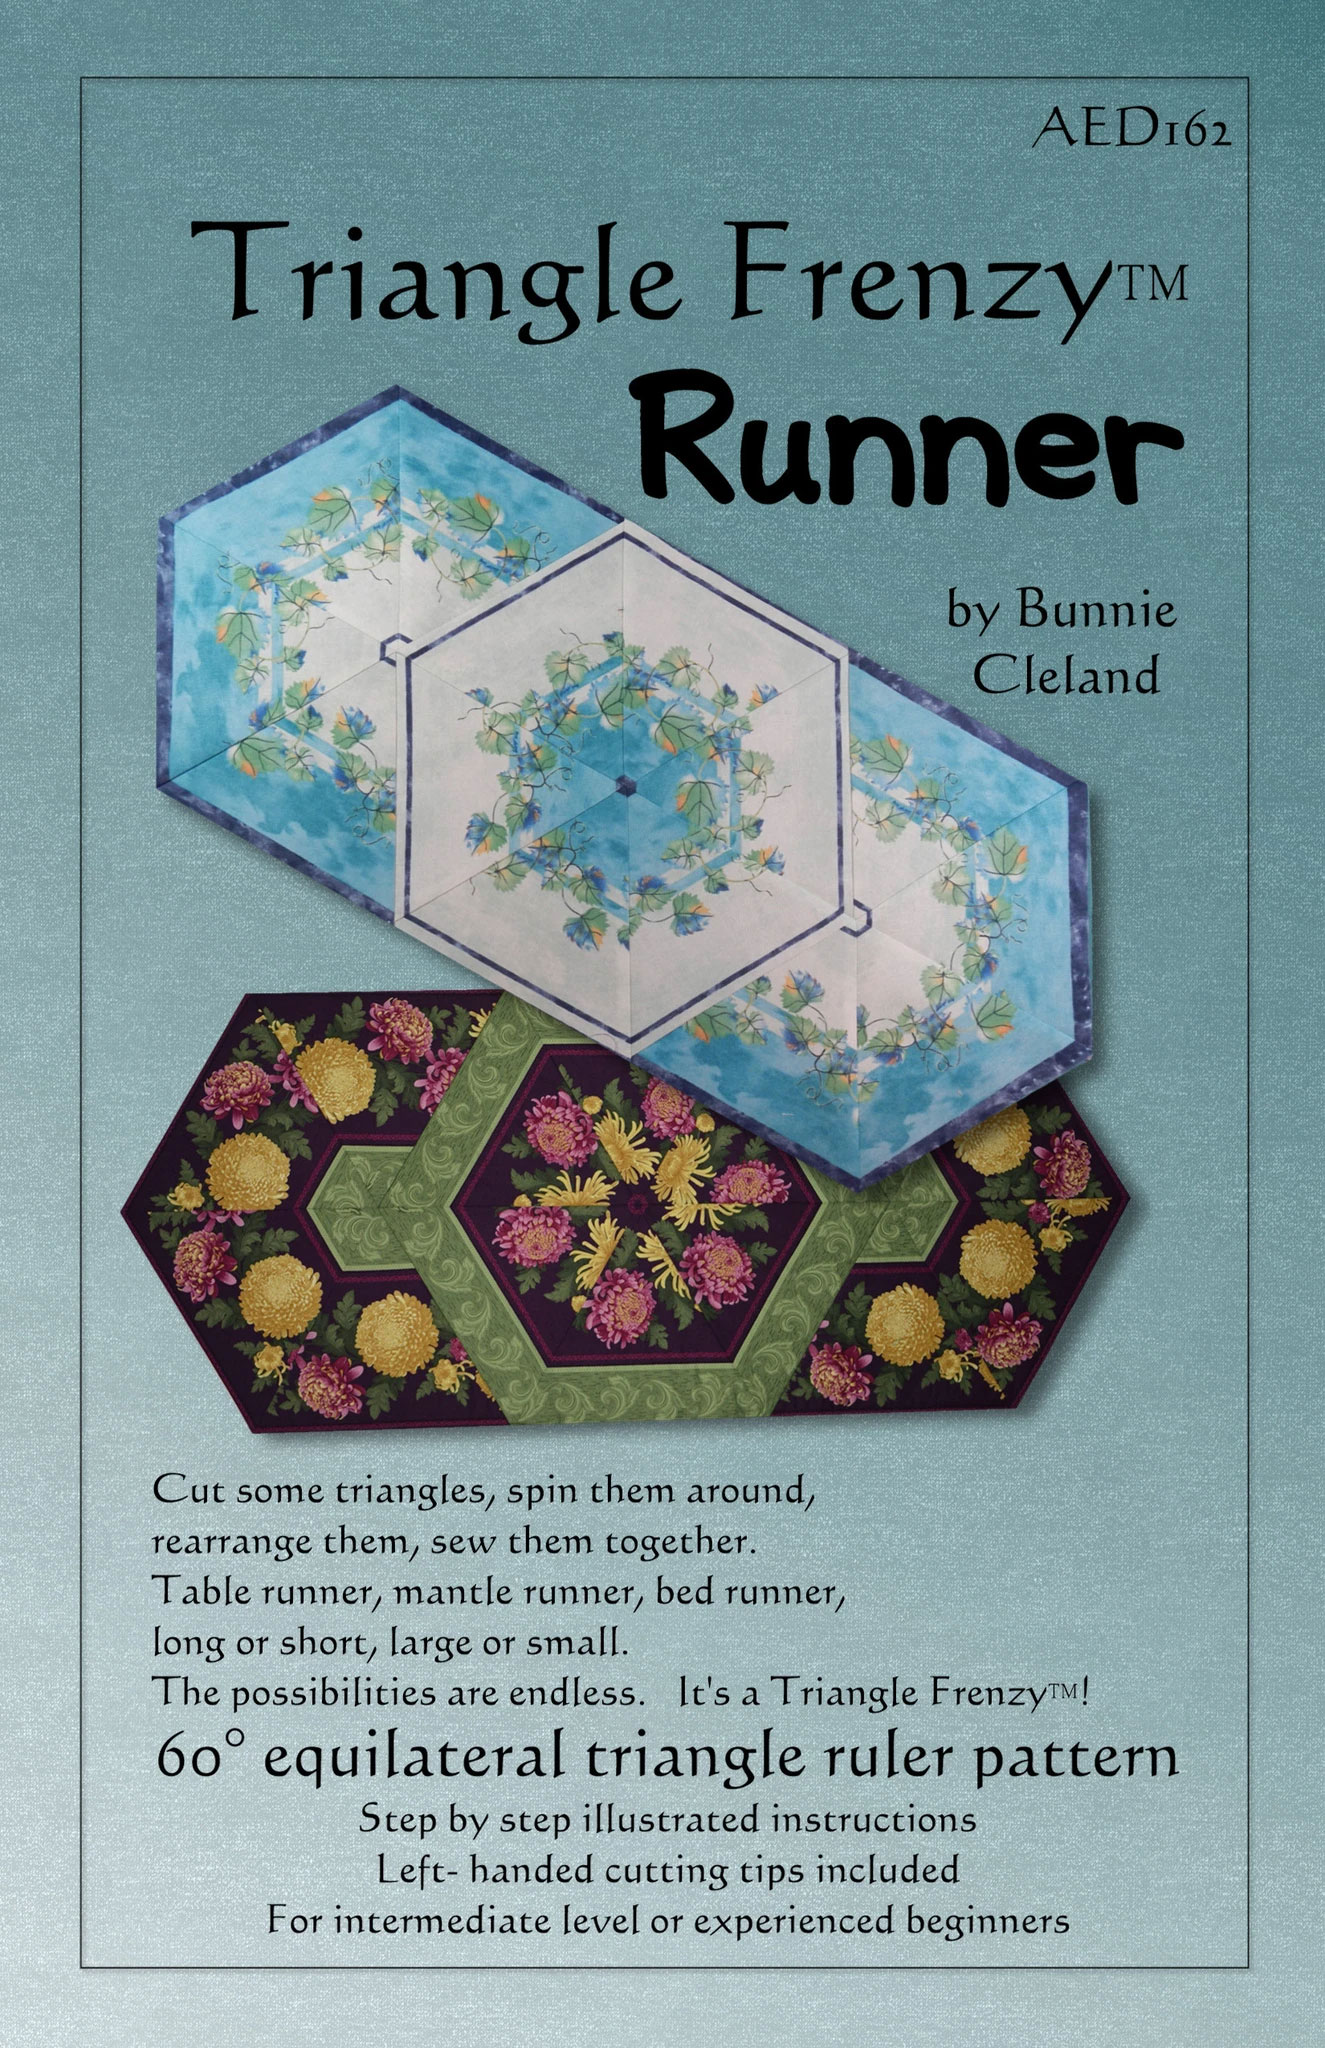 Sewing Pattern Triangles Triangle-frenzy-runner-sewing